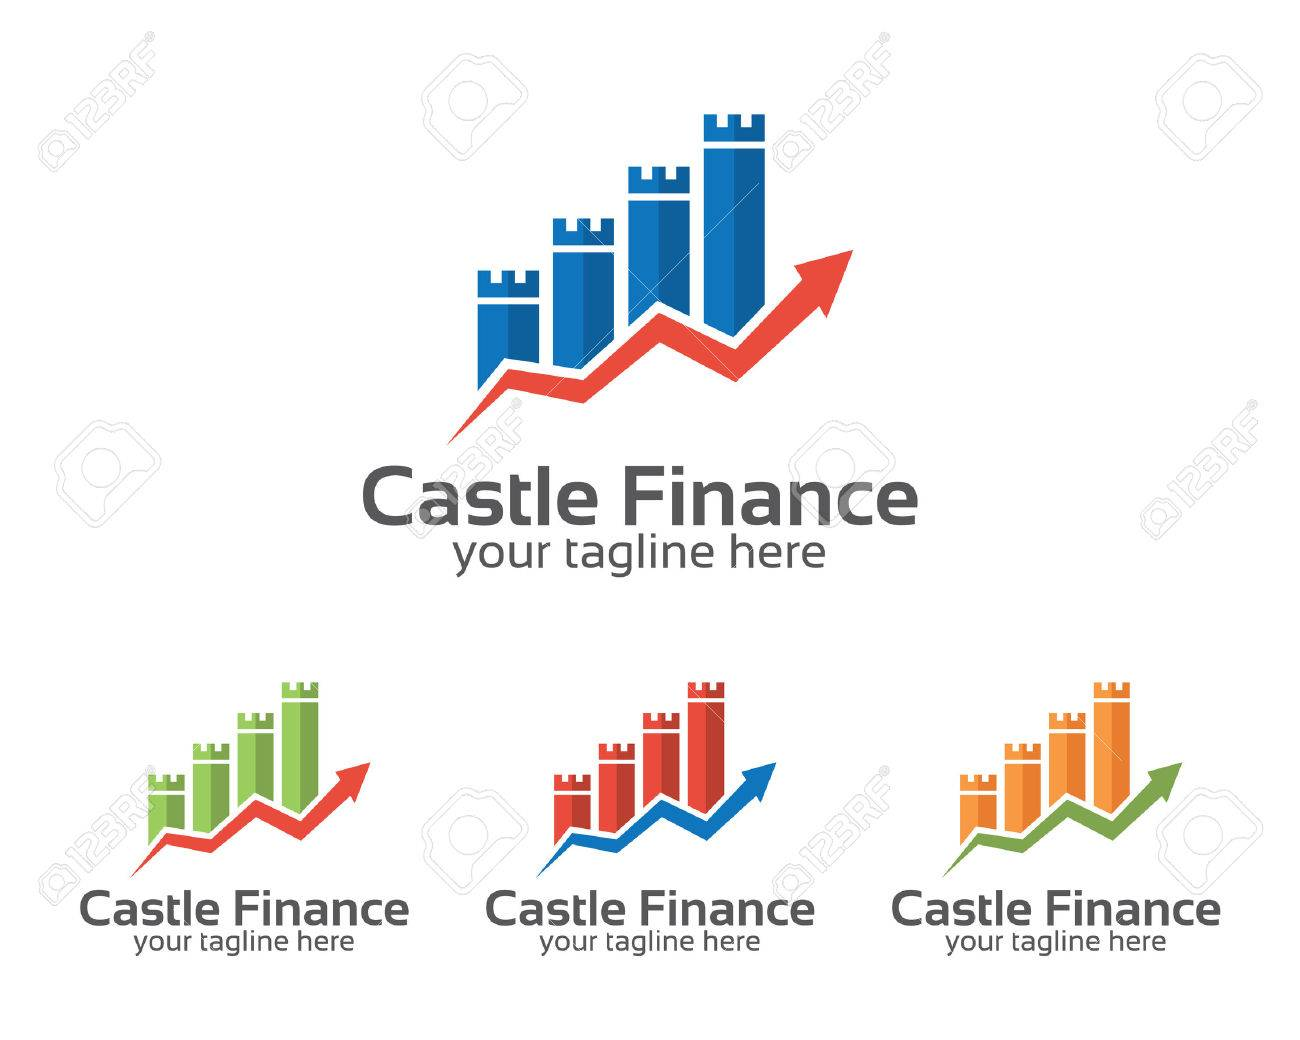 Business corporate castle finance logo design template simple business corporate castle finance logo design template simple and clean flat design of financial illustration cheaphphosting Image collections